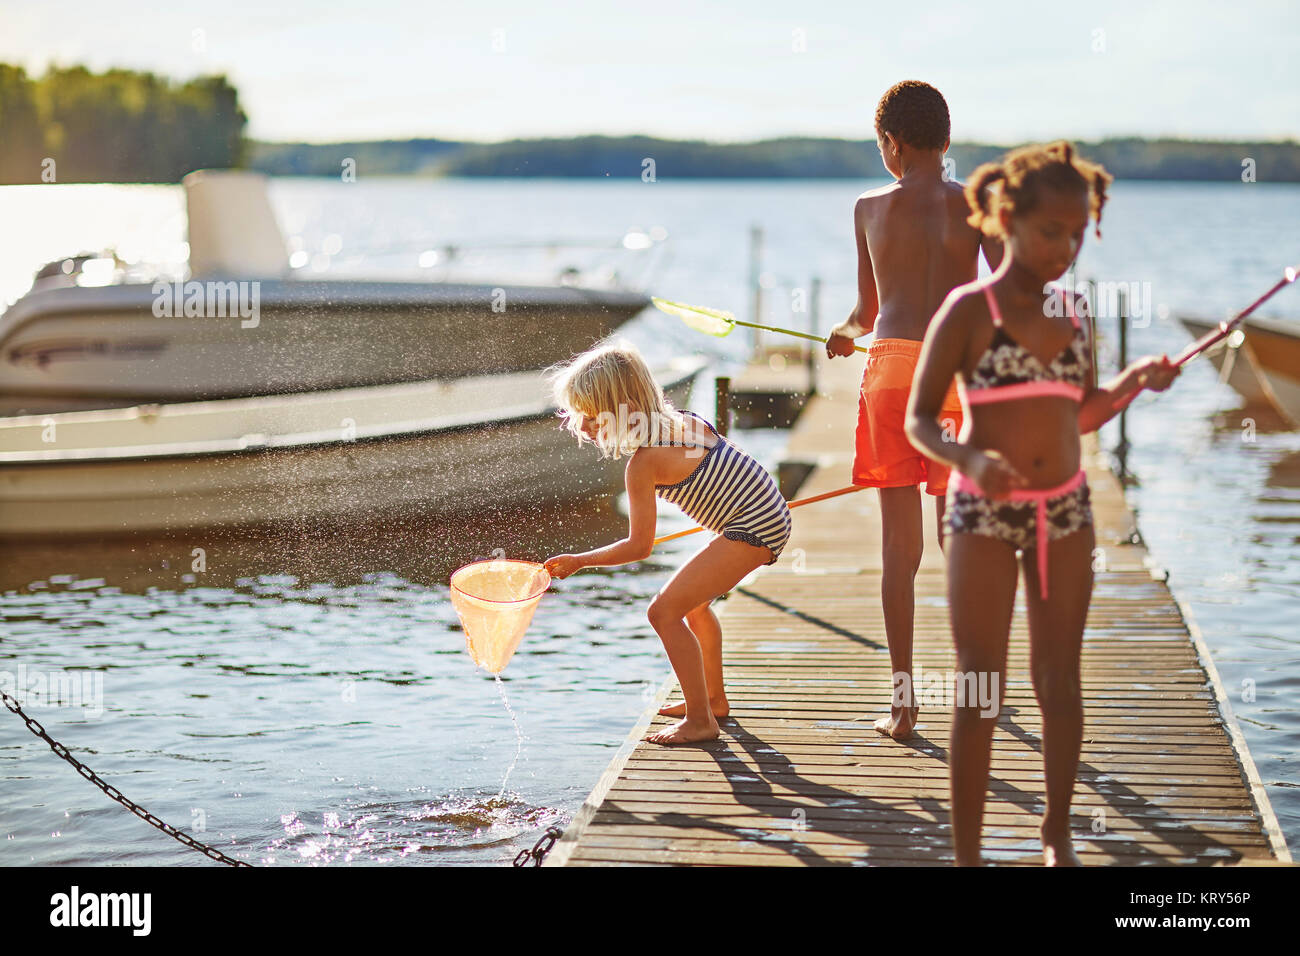 Children fishing on a pier - Stock Image